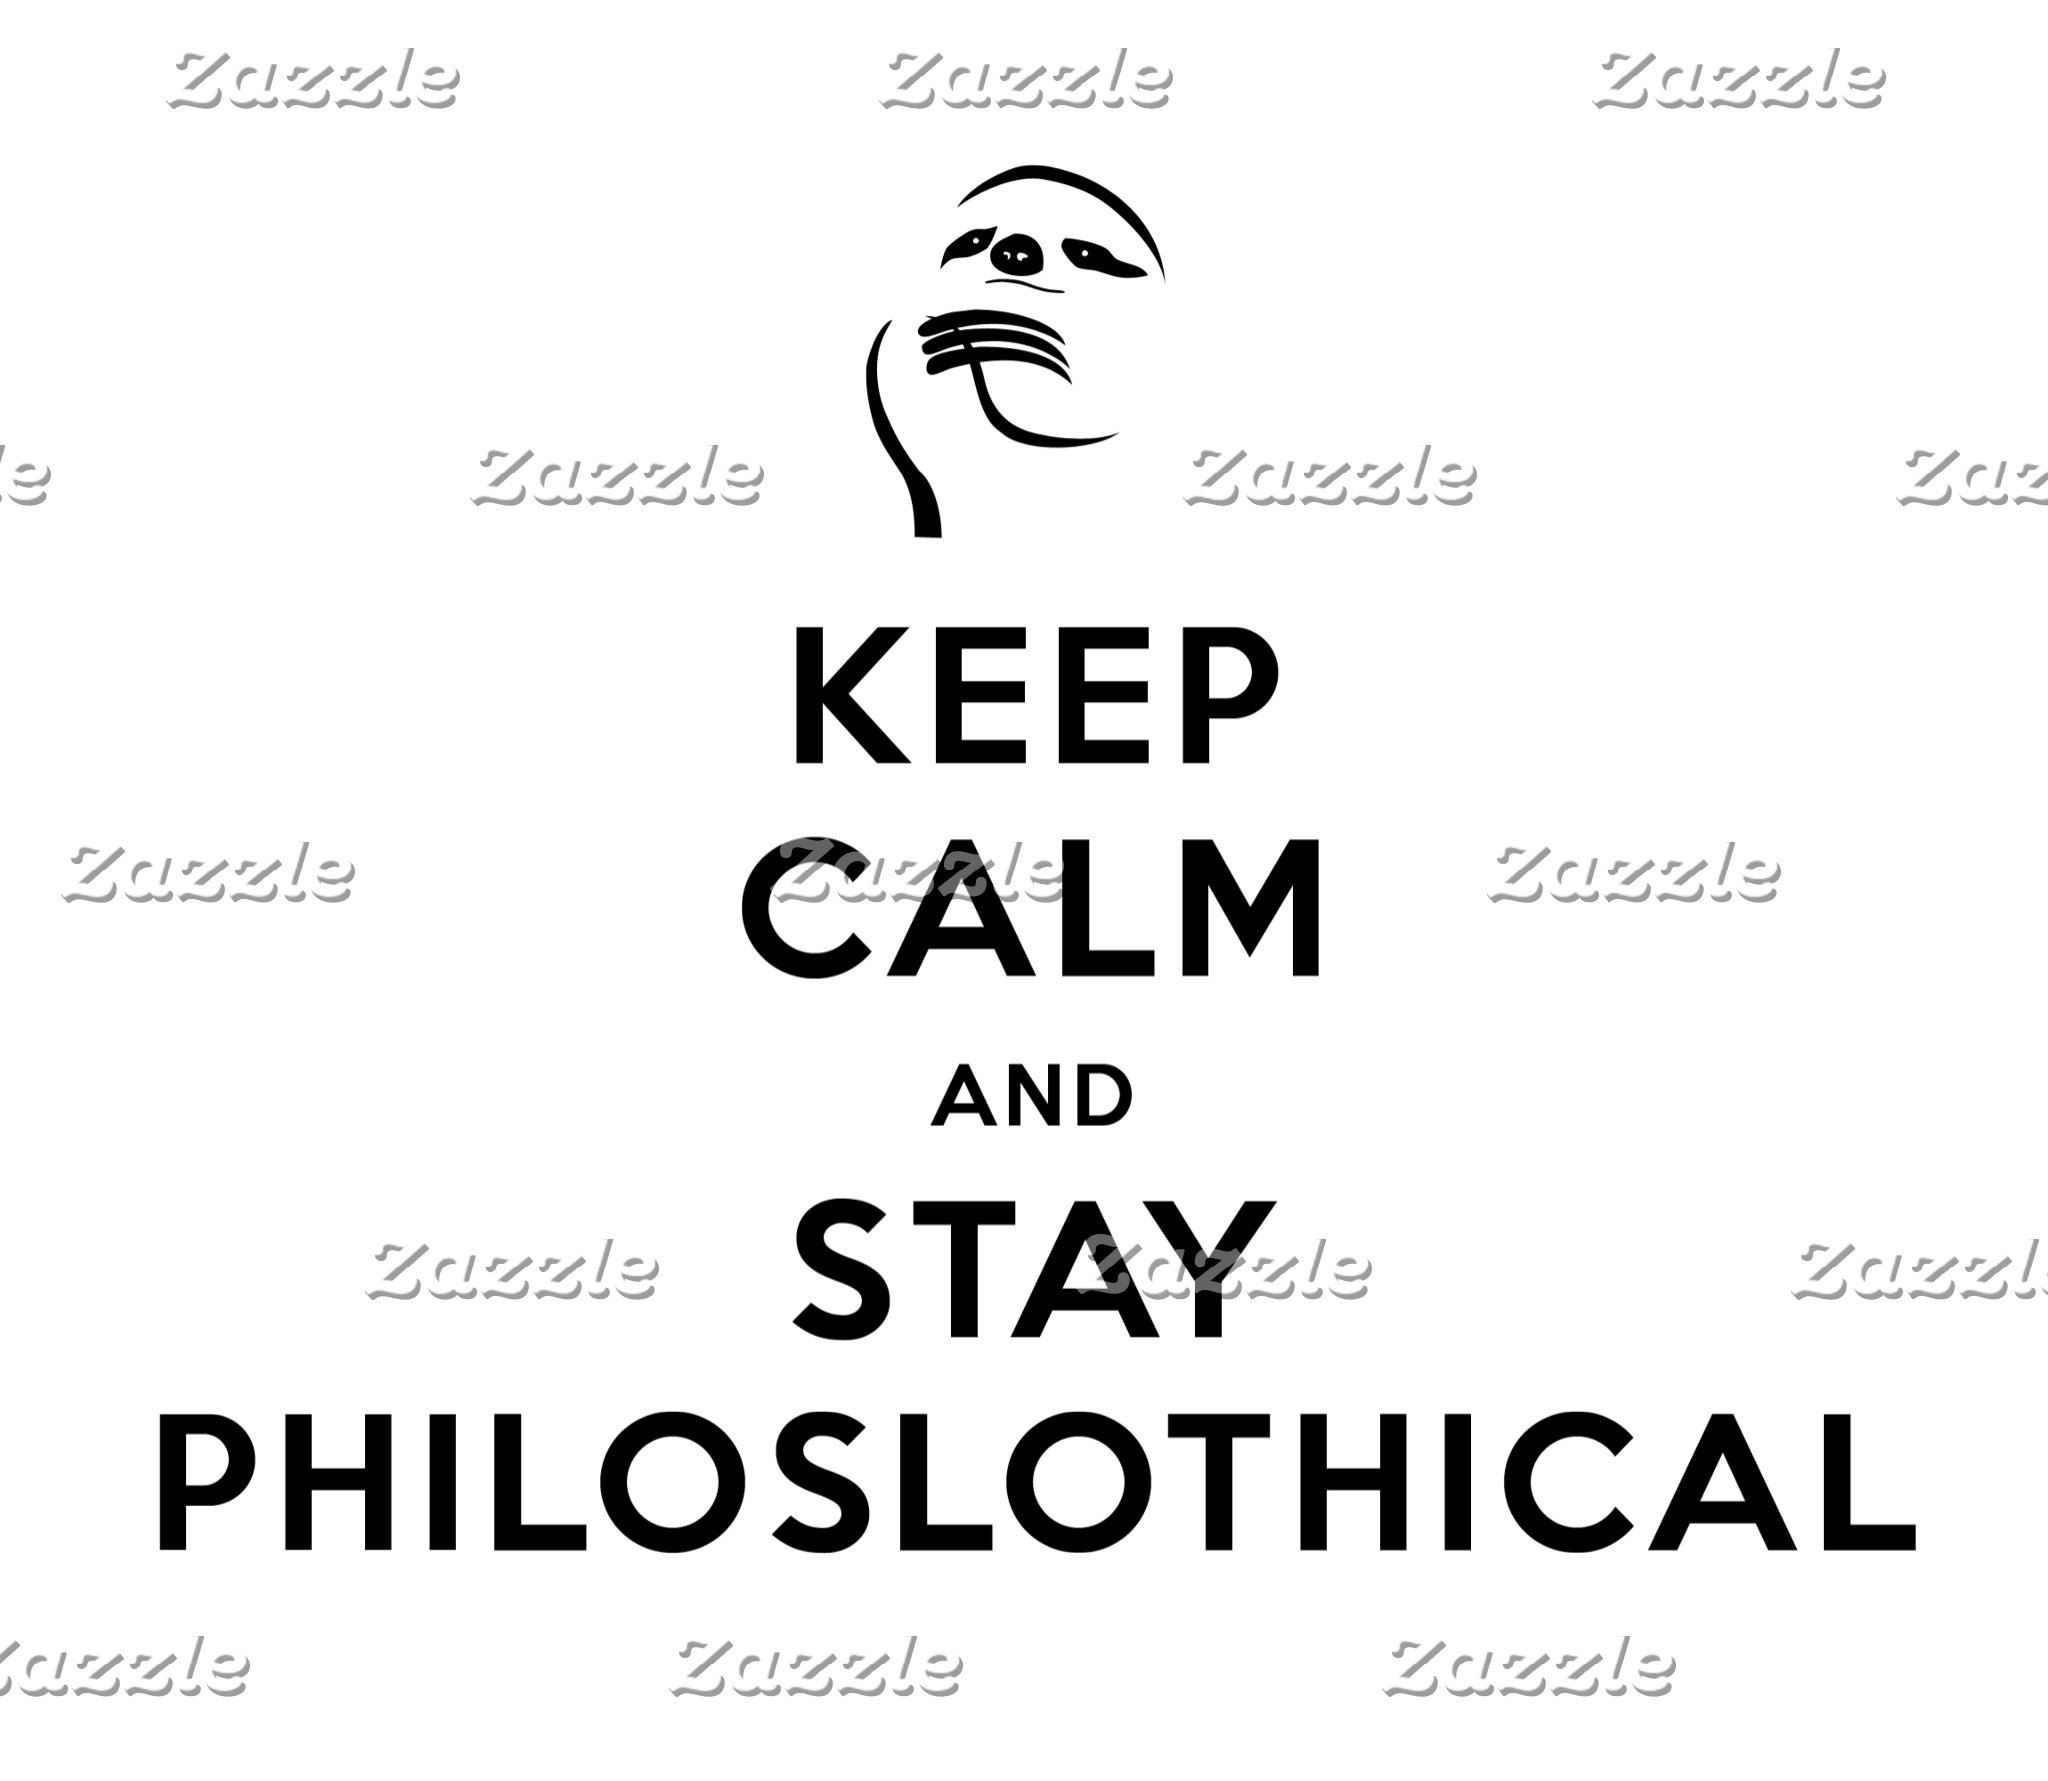 Keep Calm and Stay Philoslothical